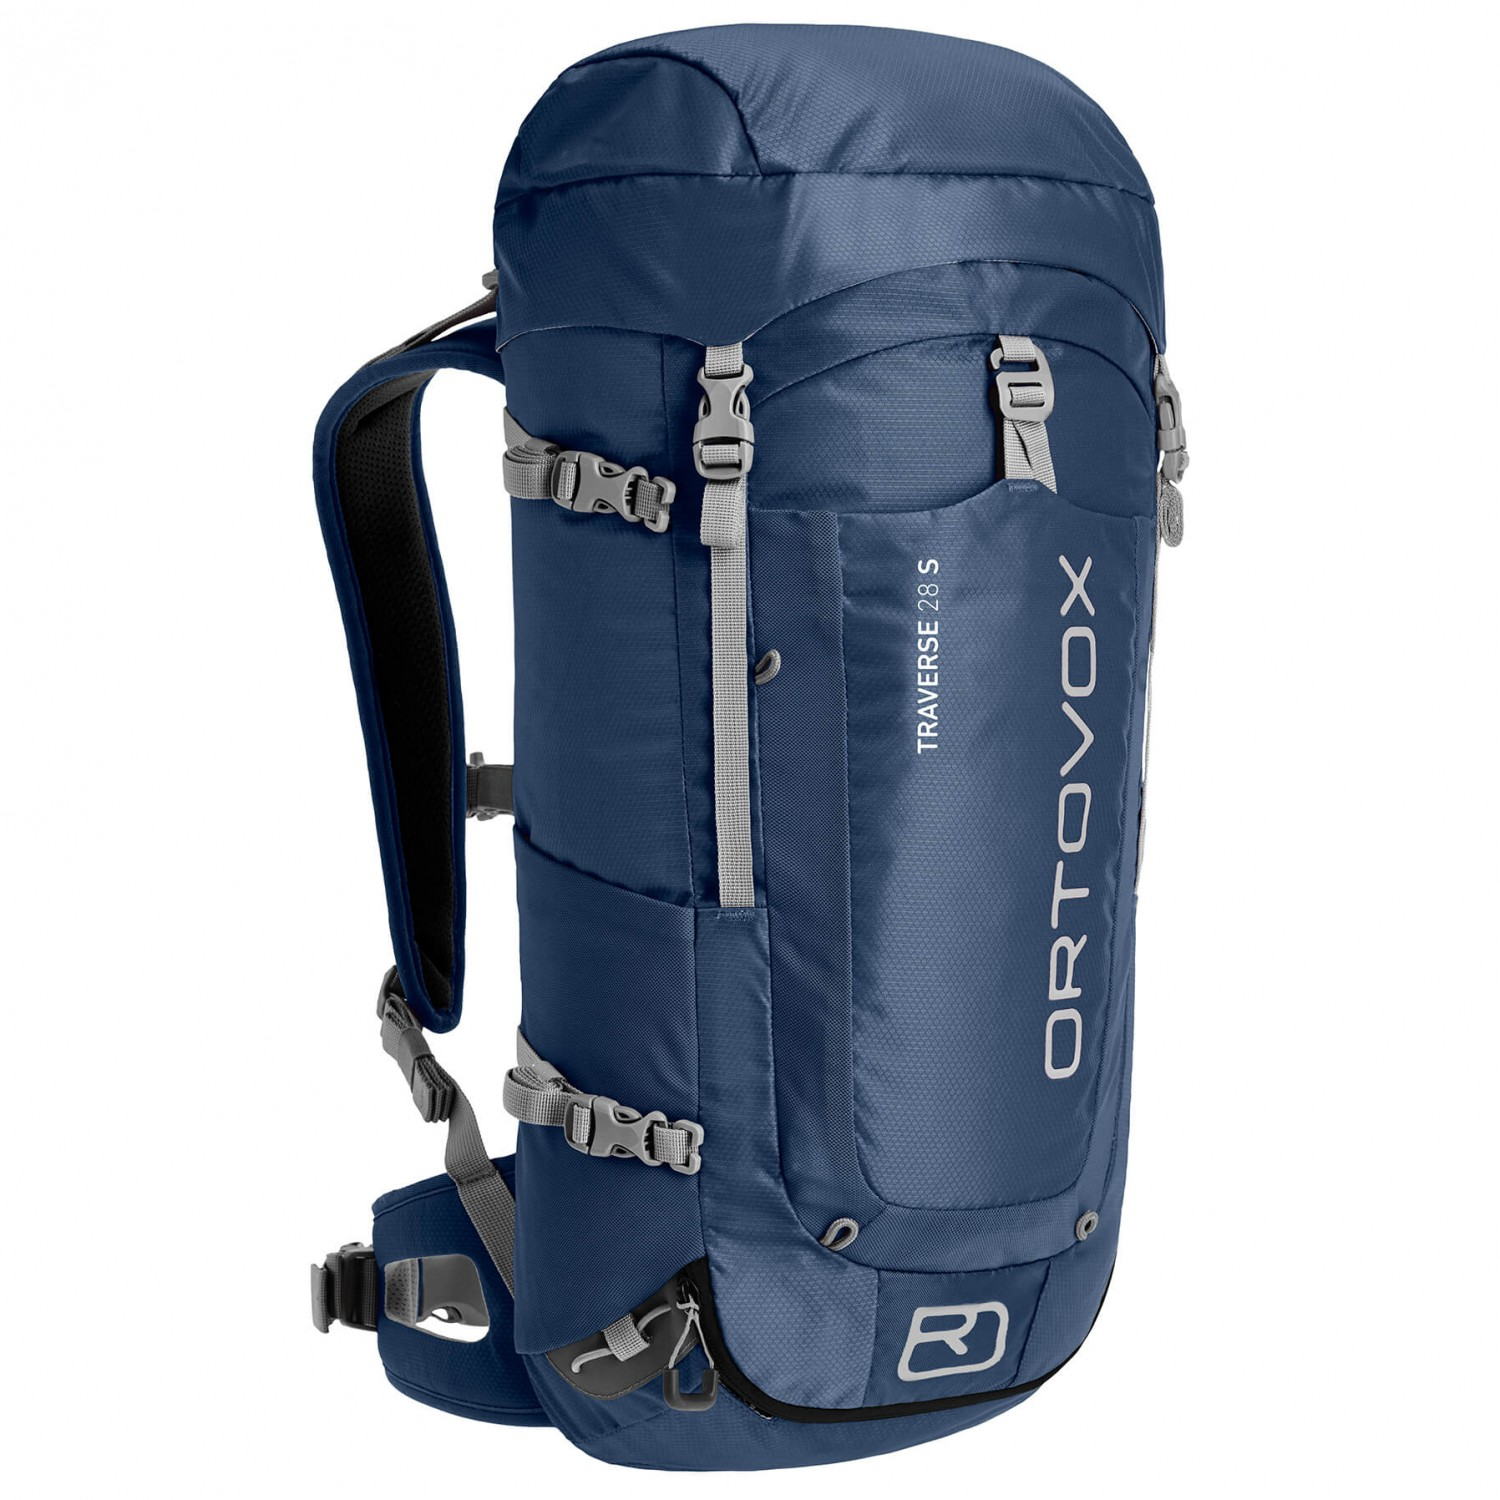 29fe79f002cce Ortovox Traverse 28 S - Touring Backpack Women s